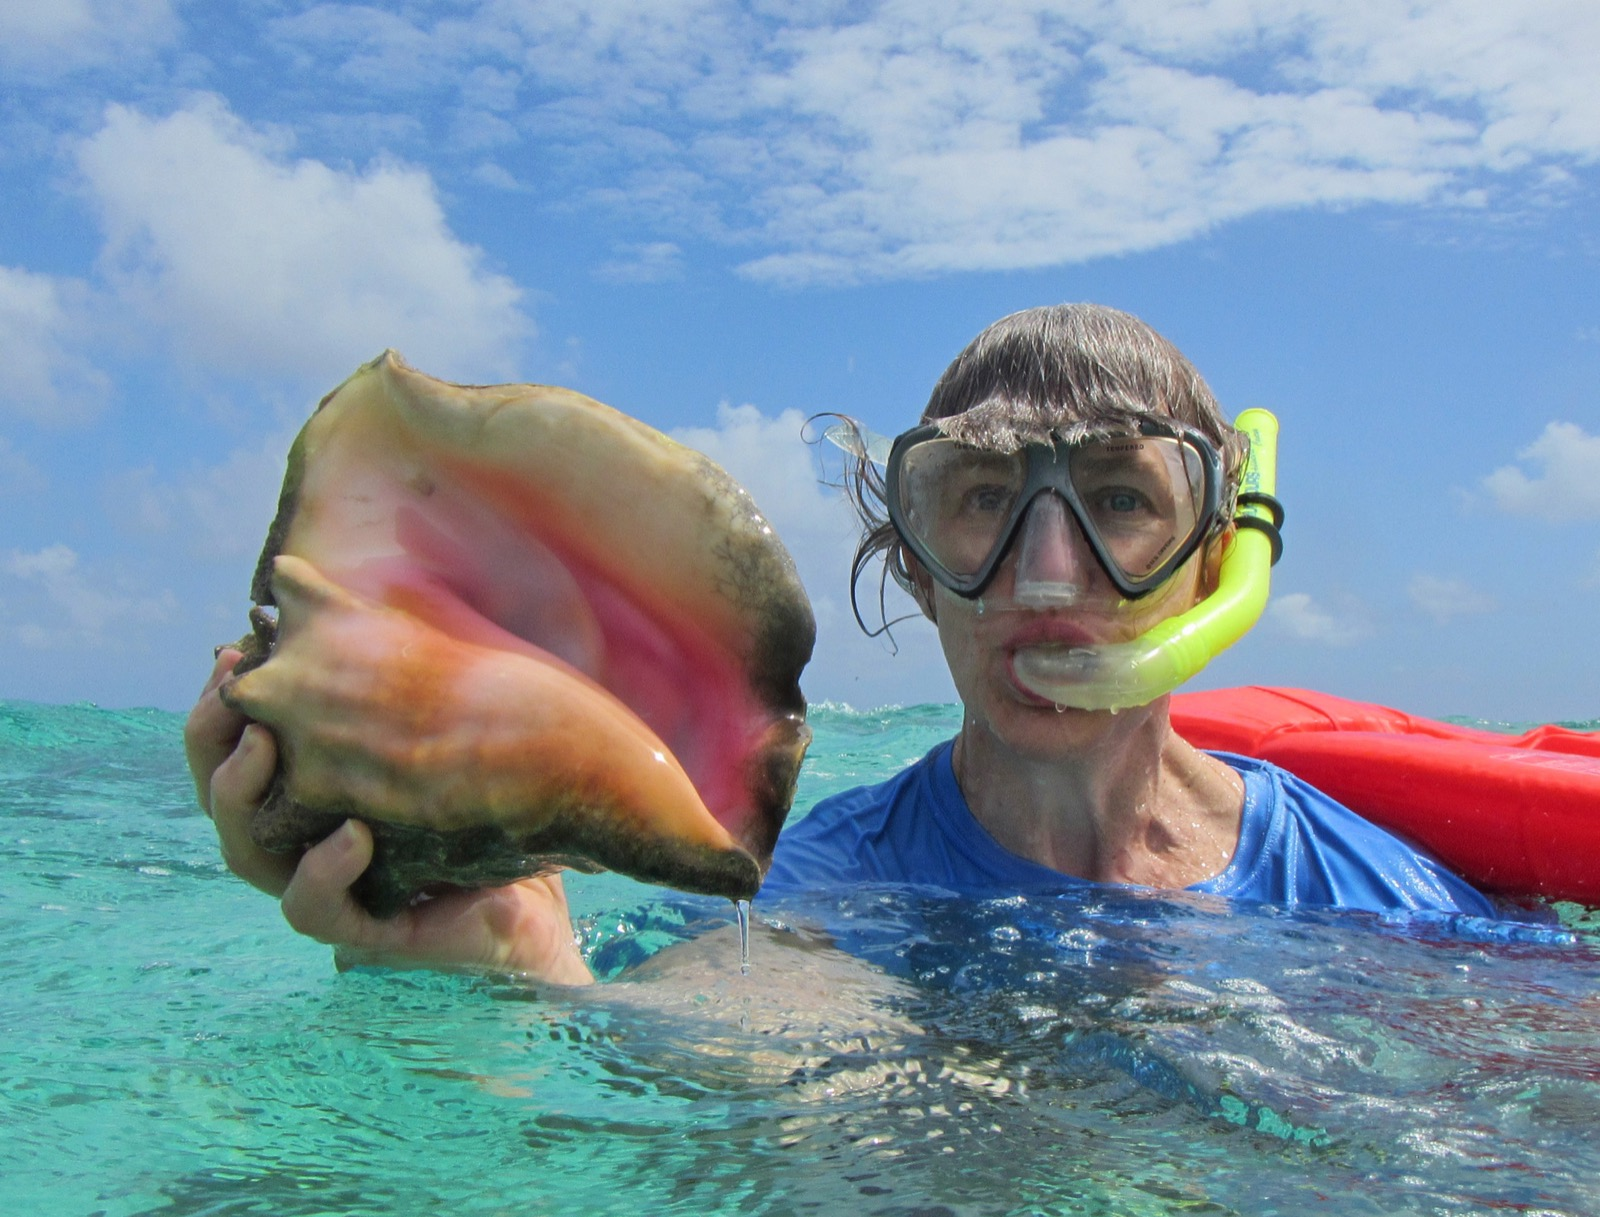 Young boy finds a large sea shell while swimming in Belize